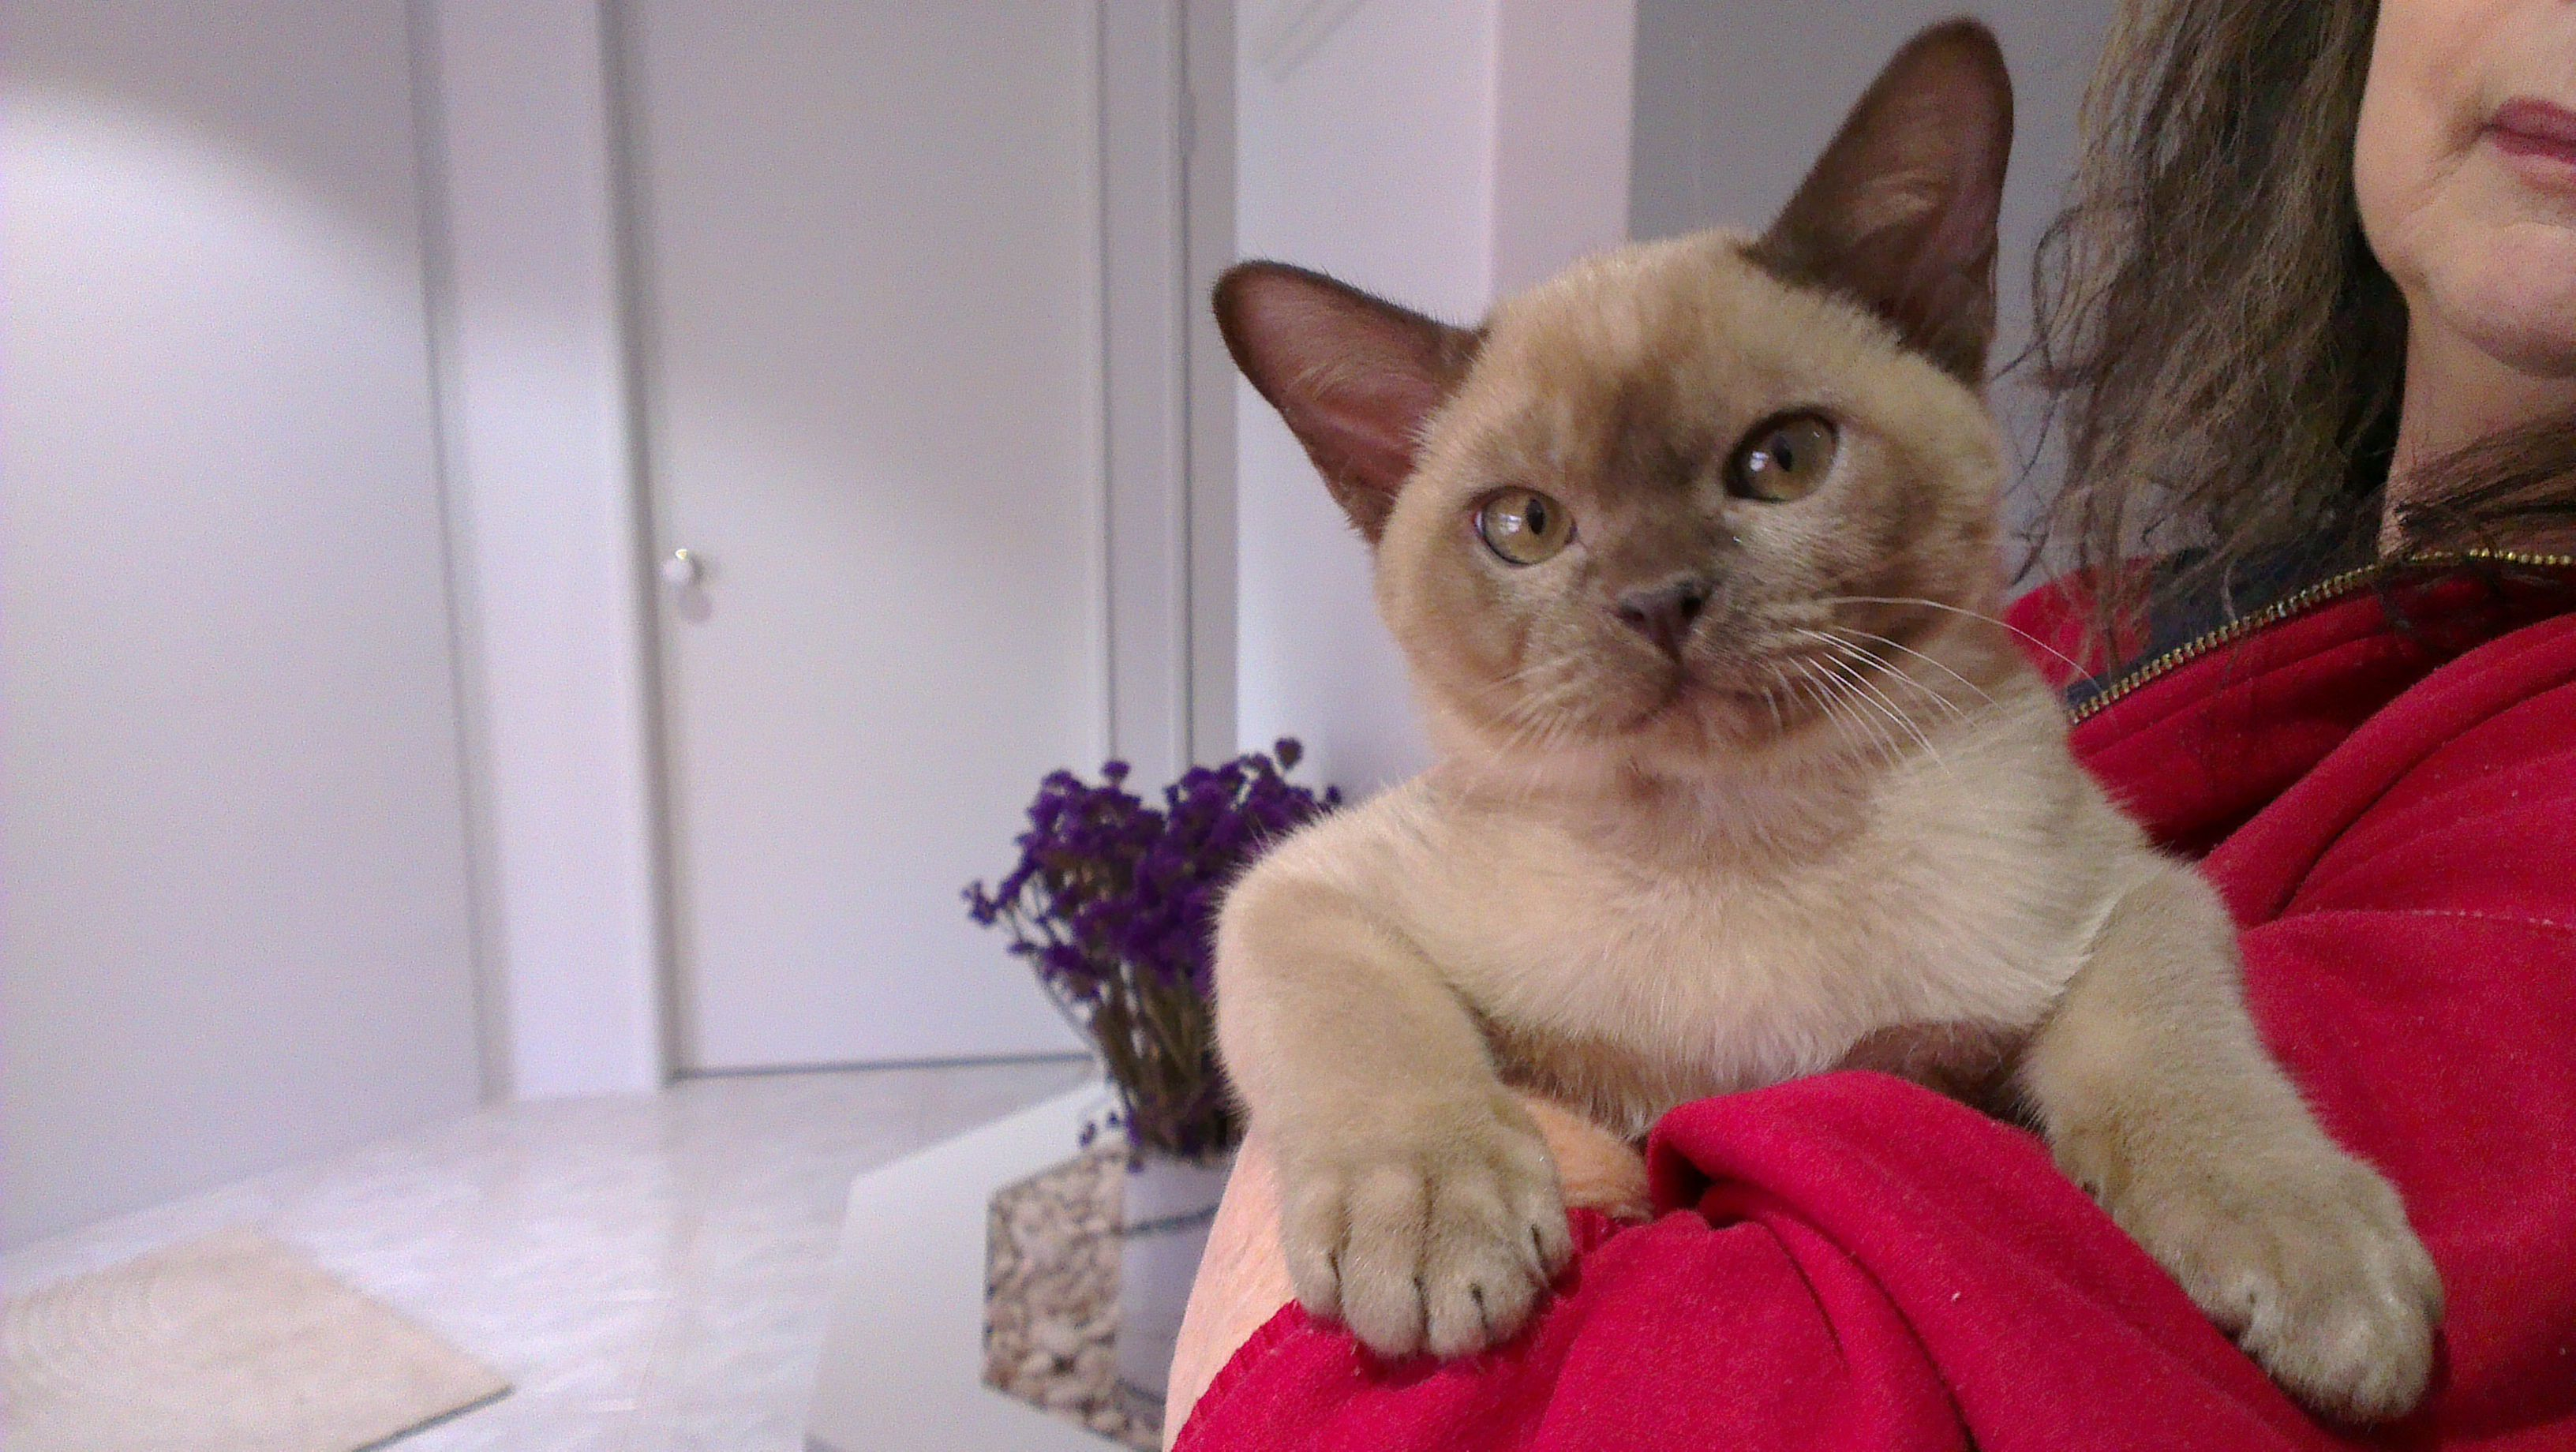 The Burmese Cat Kittens First Came To America In 1930 When Dr Joseph Thompson Of San Francisco Brought A Small Walnut Brown Female Cat From Burma Burmese Ca